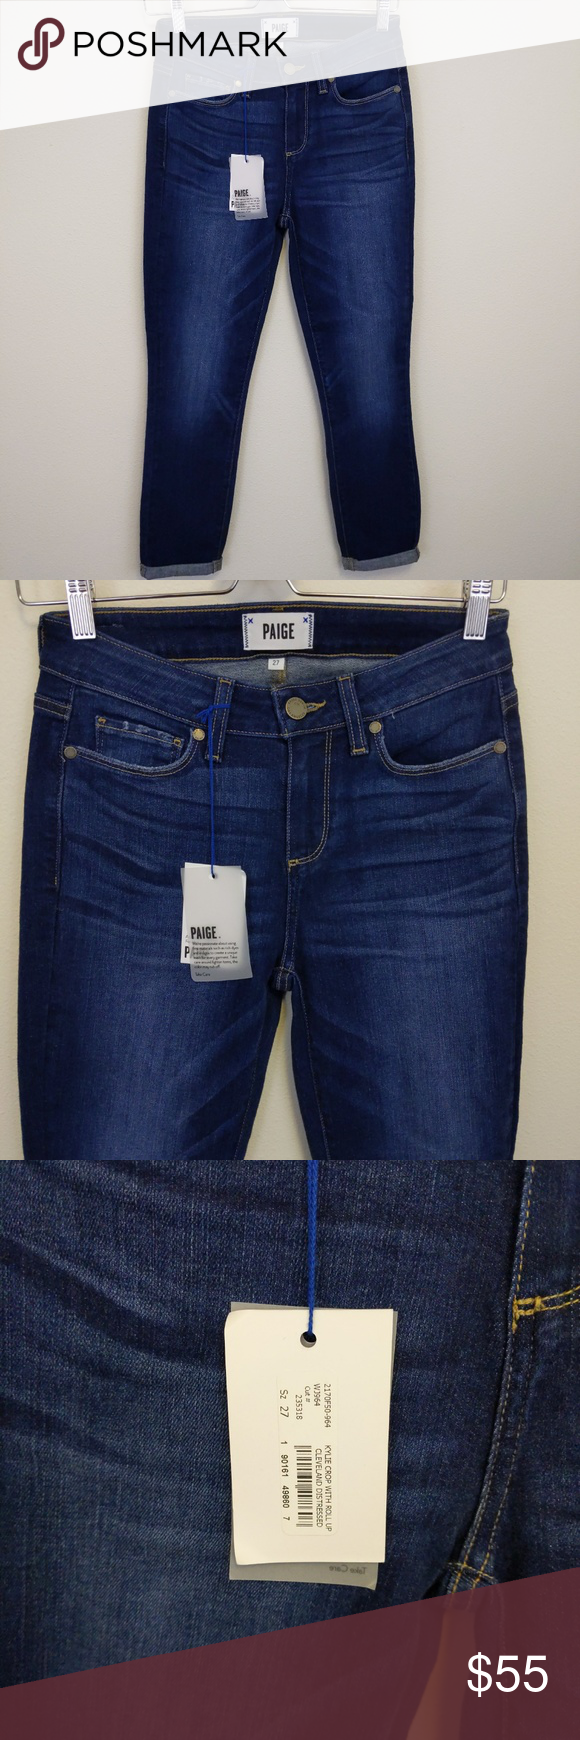 Paige Kylie Crop Roll up Cleveland Distressed 27 New with Tag Paige  Kylie Crop with Roll Up Cleveland Distressed. 5 pocket, zip fly with button closure and belt loops. Skinny leg with cuffed hem Fiber Content: 92% cotton 6% Polyester, 2% spandex Size: 27 Approximate Measurements: 13.5